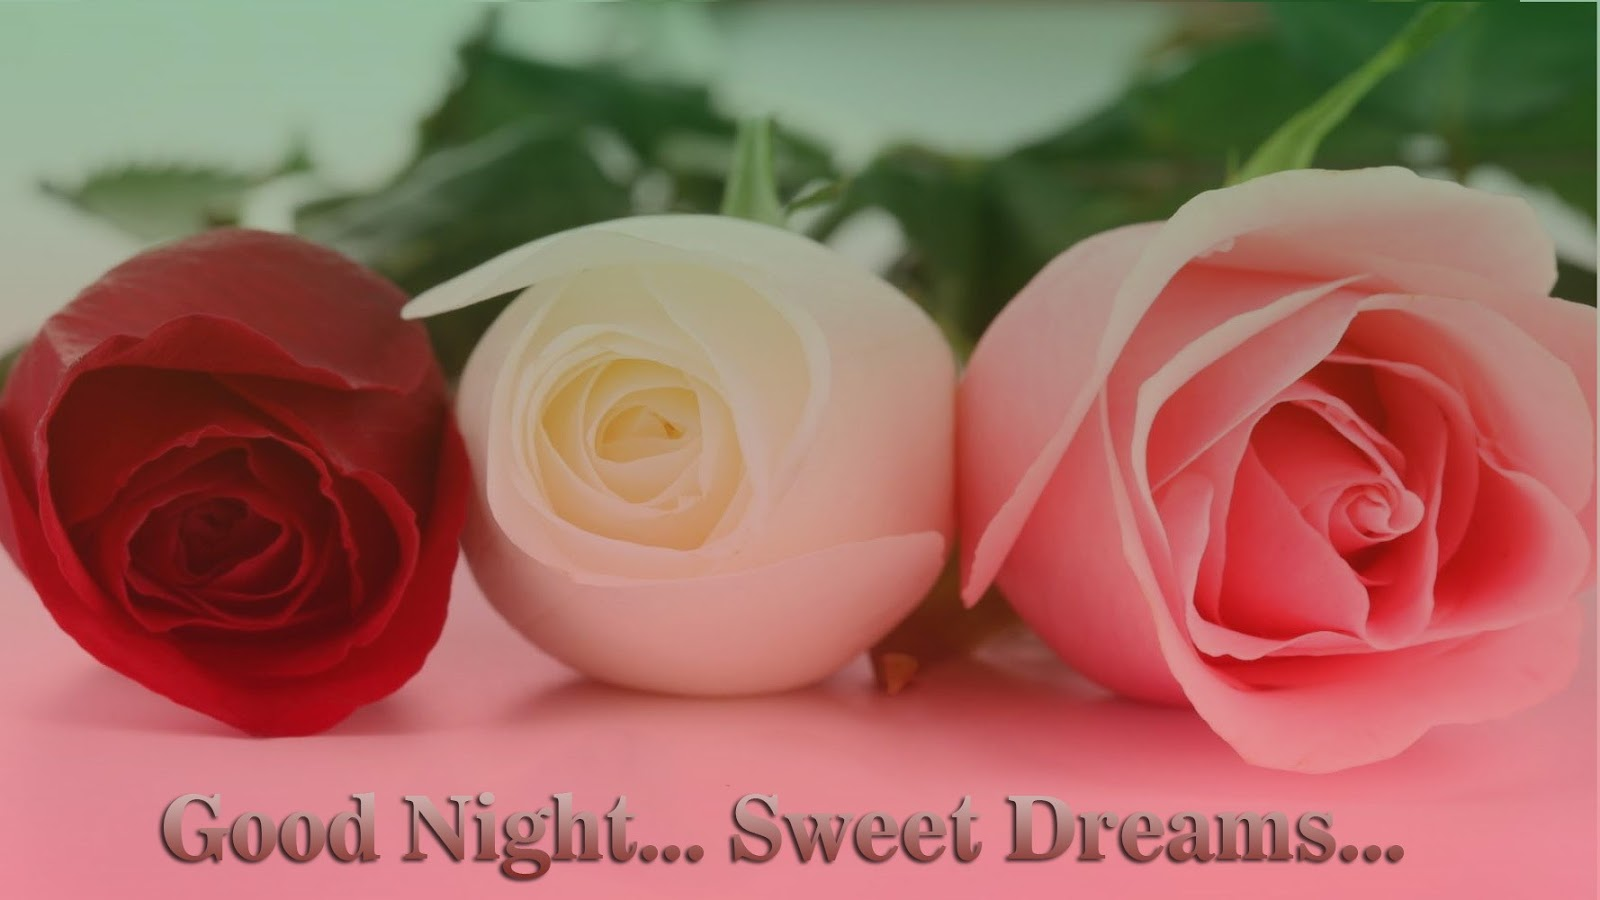 Red Rose Images Love Hd Good Night - Wallpaperzen org